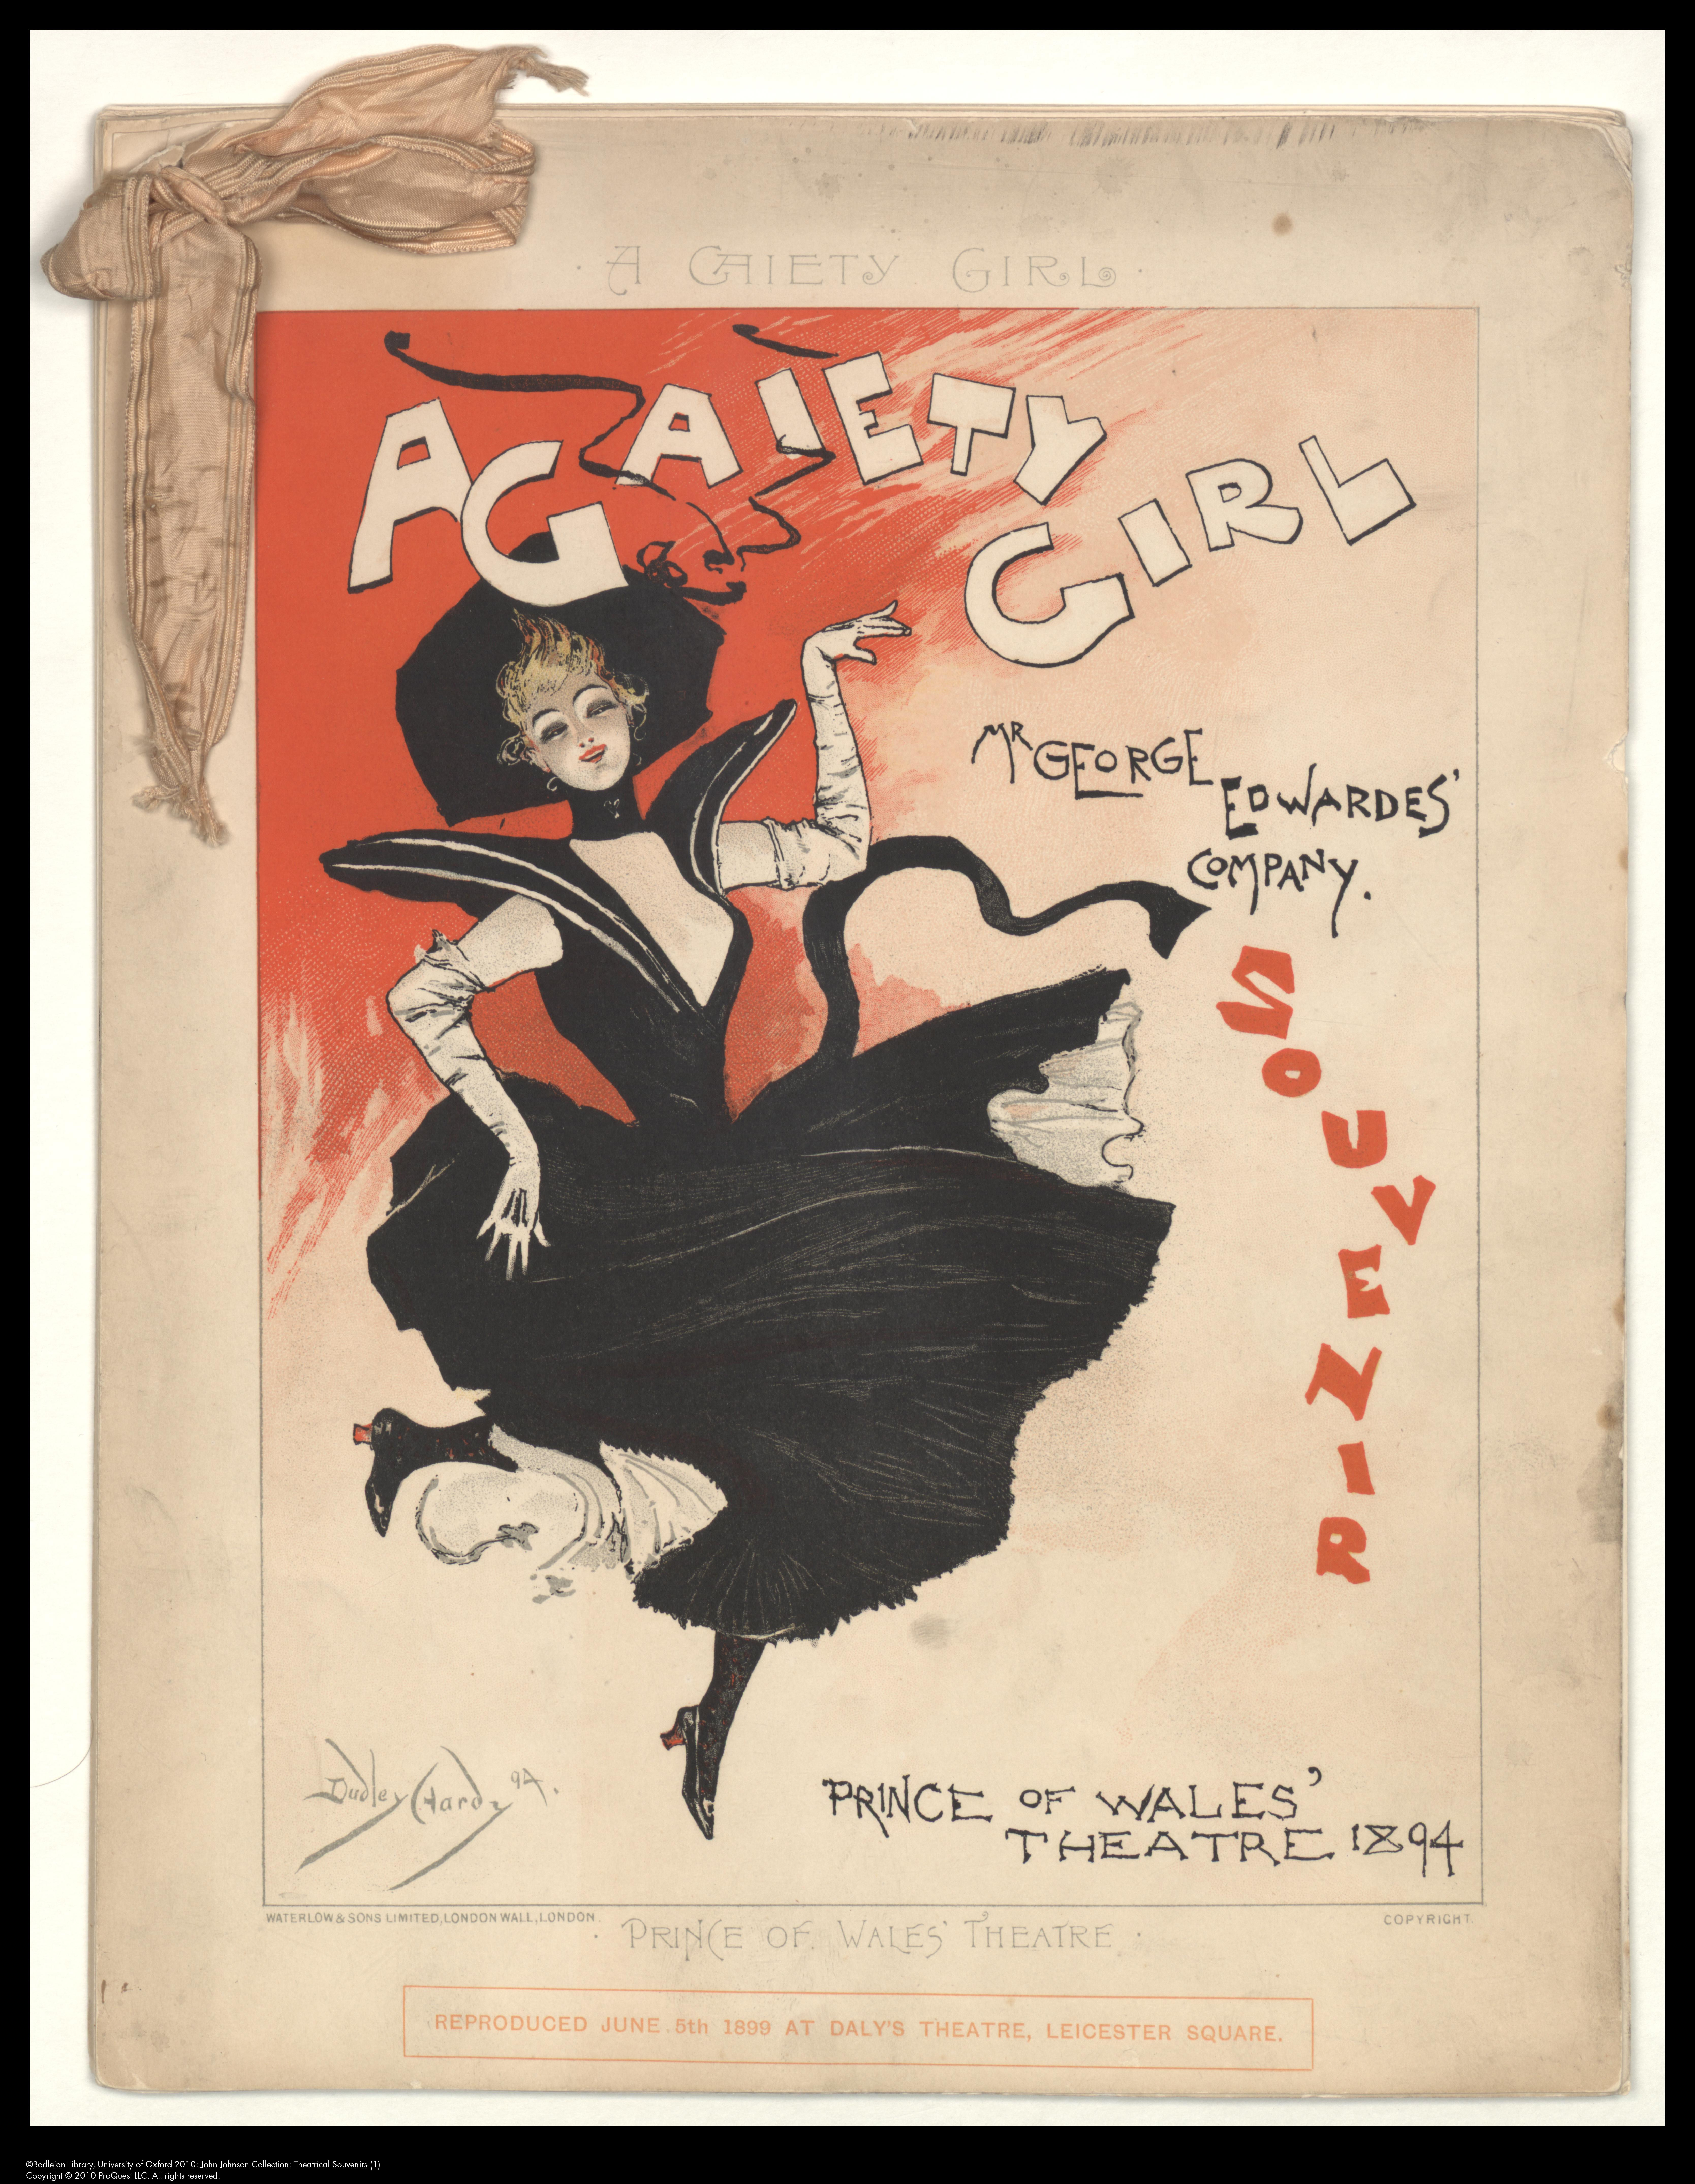 Cover by Dudley Hardy for the theatrical souvenir of A Gaiety Girl